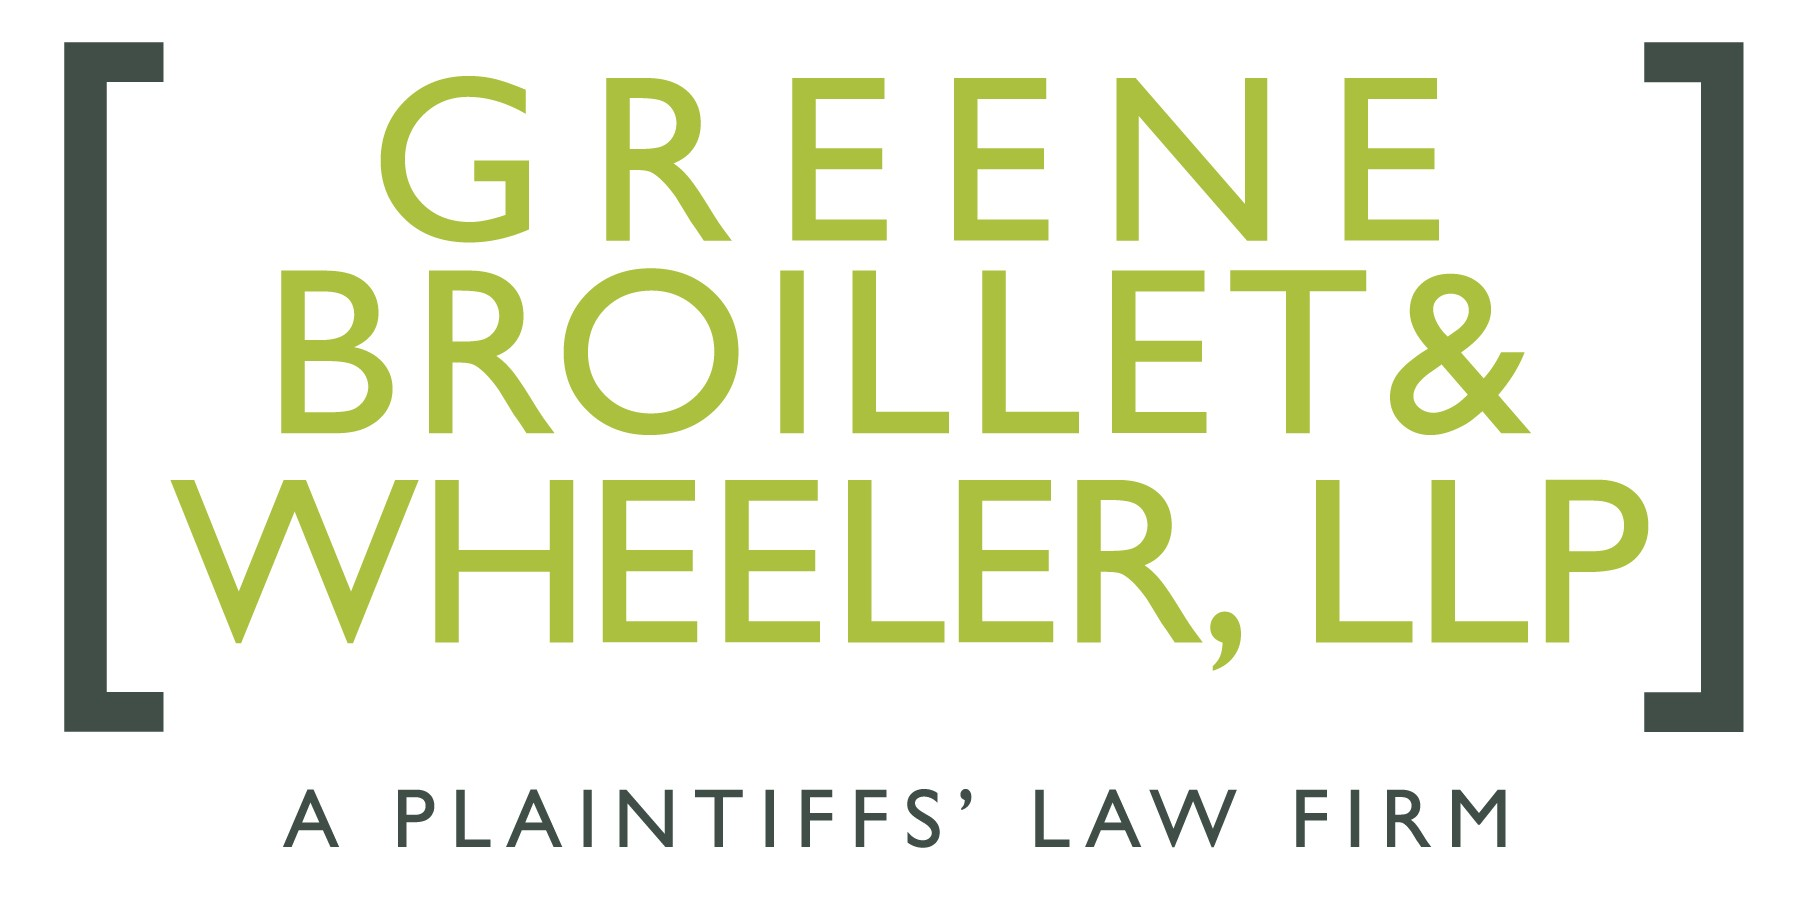 Greene Broillet stacked - a plaintiffs law firm